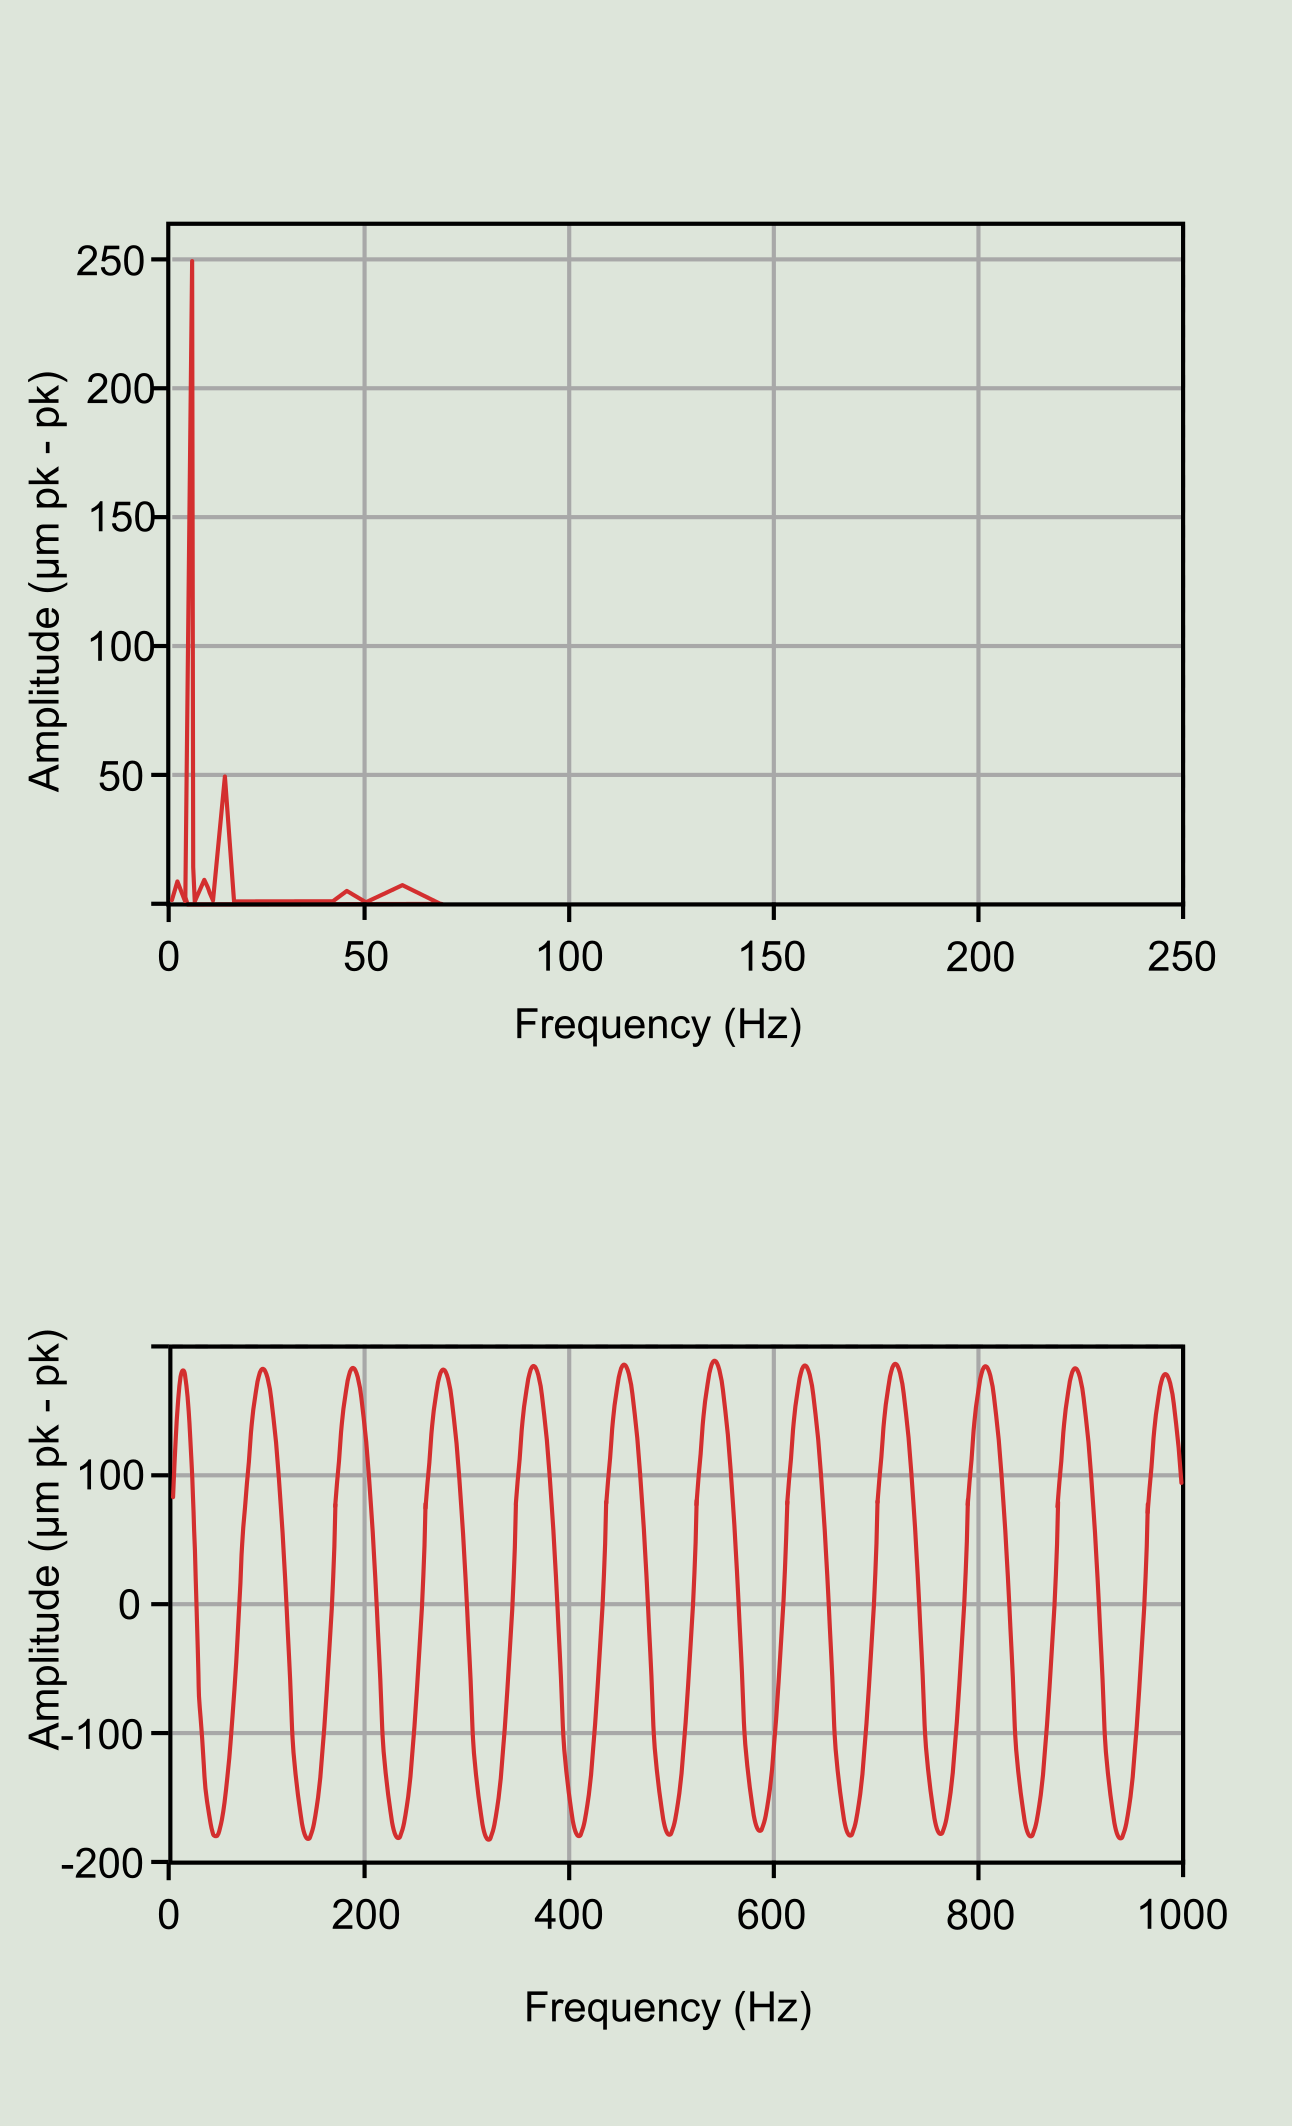 Figure 8: Signal and spectrum with possible misalignment.